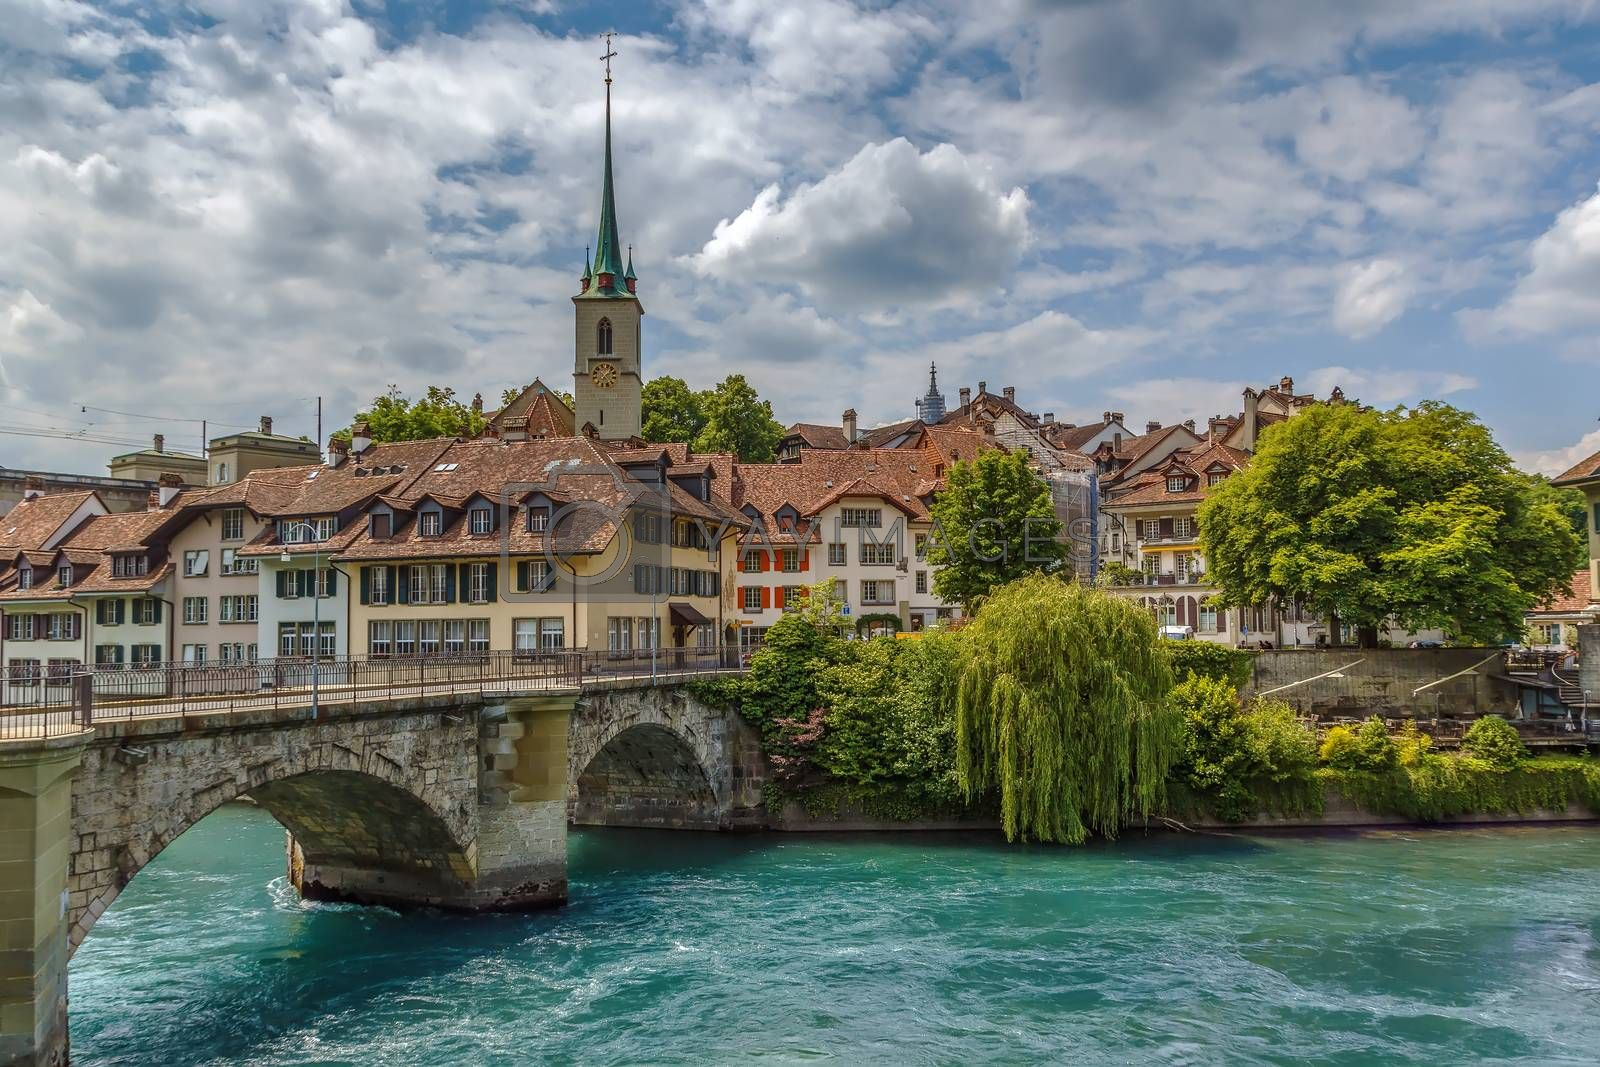 bridge over the Aare river in Bern, Switzerland by borisb17